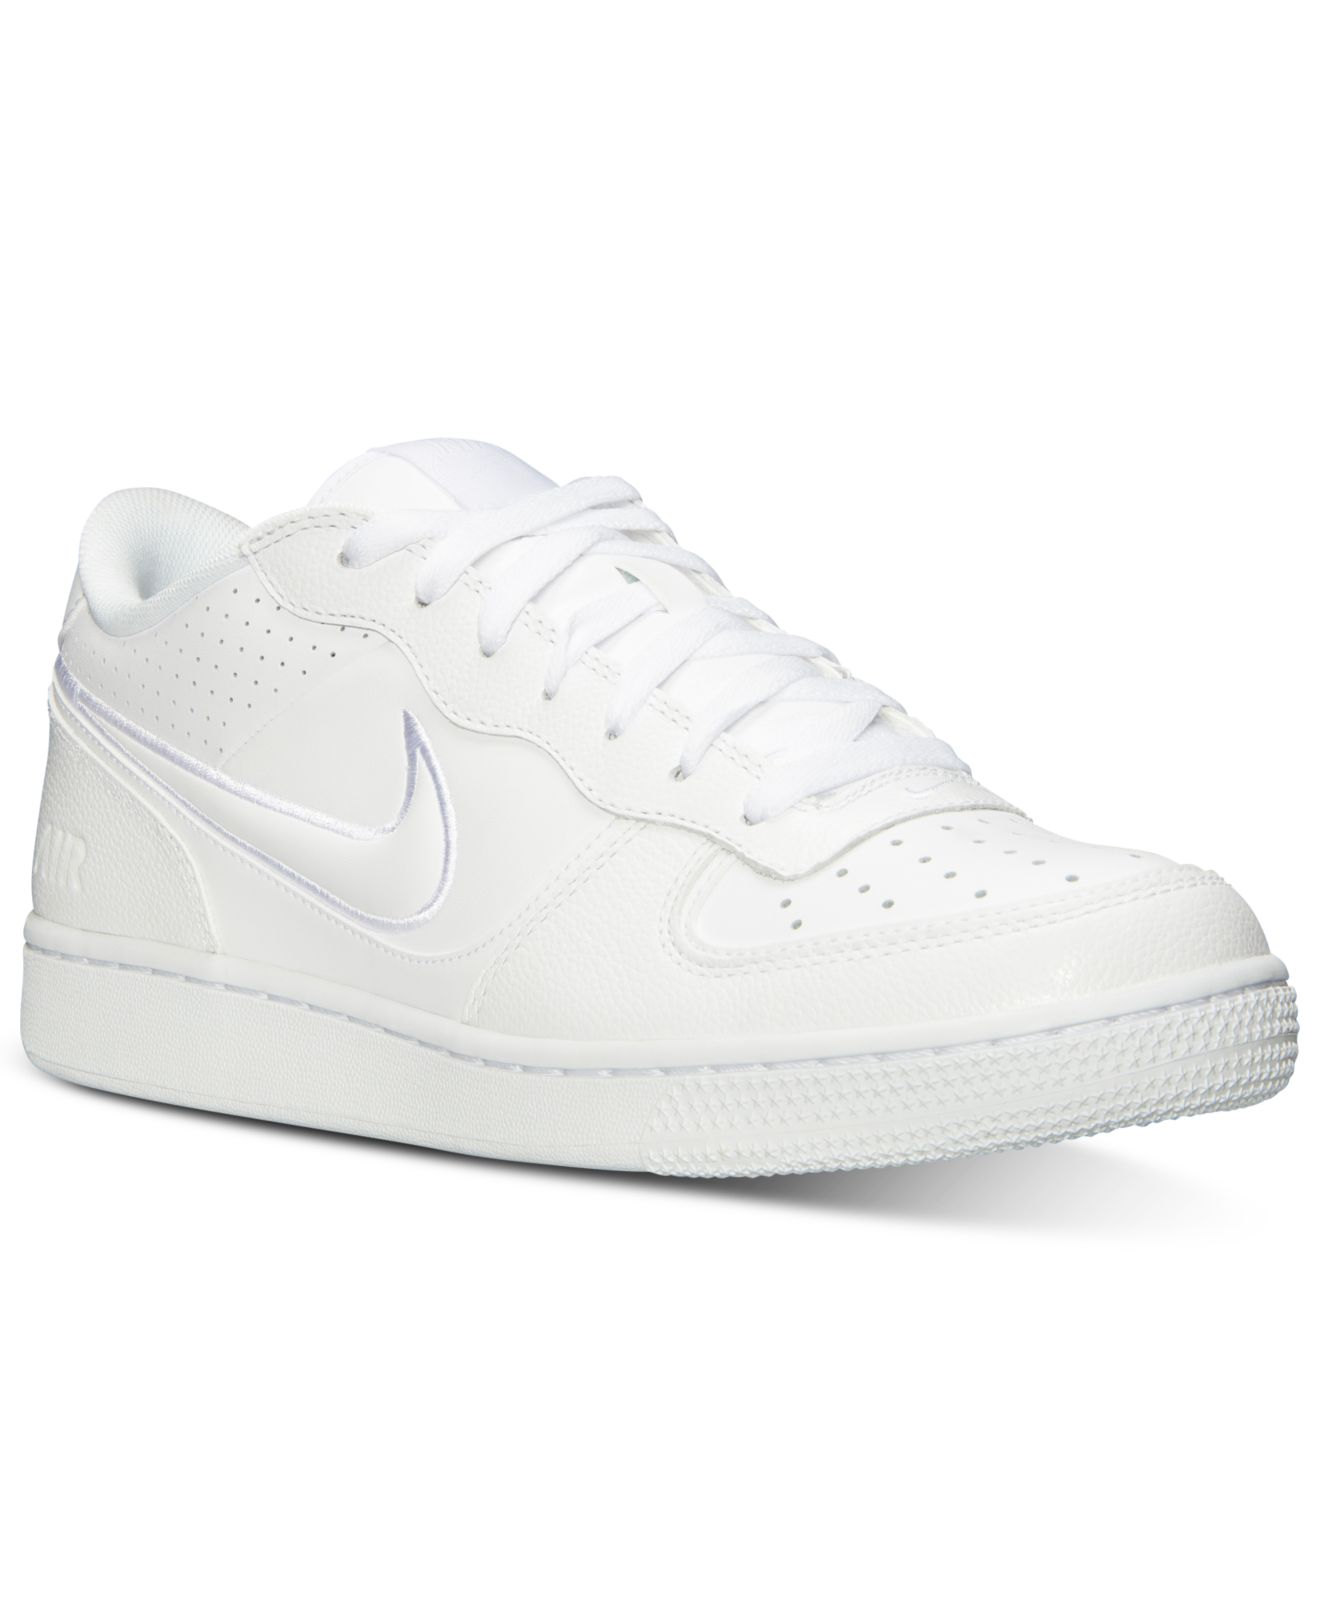 save off 0ae92 c5119 Nike Men S Air Indee Casual Sneakers From Finish Line in White for ...